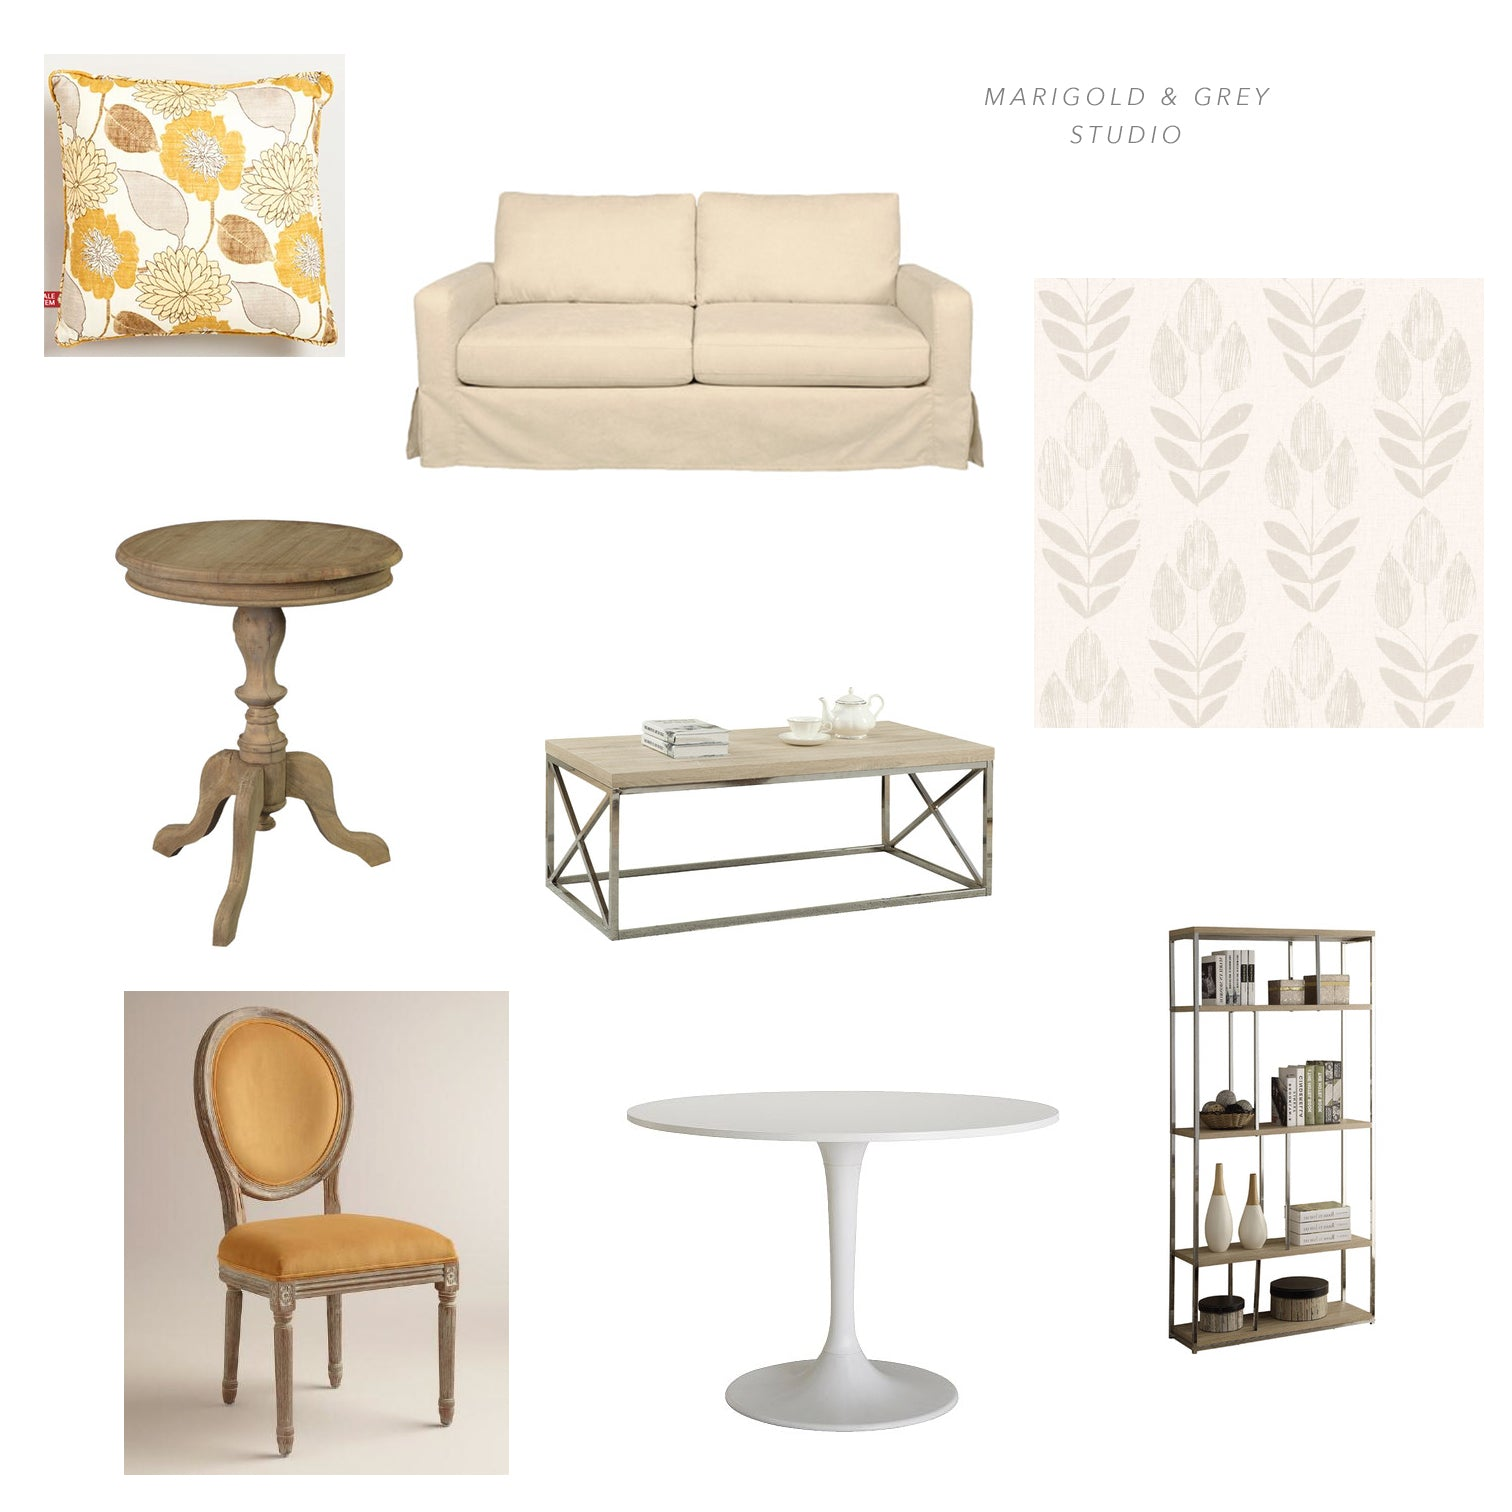 marigold-grey-studio-inspiration